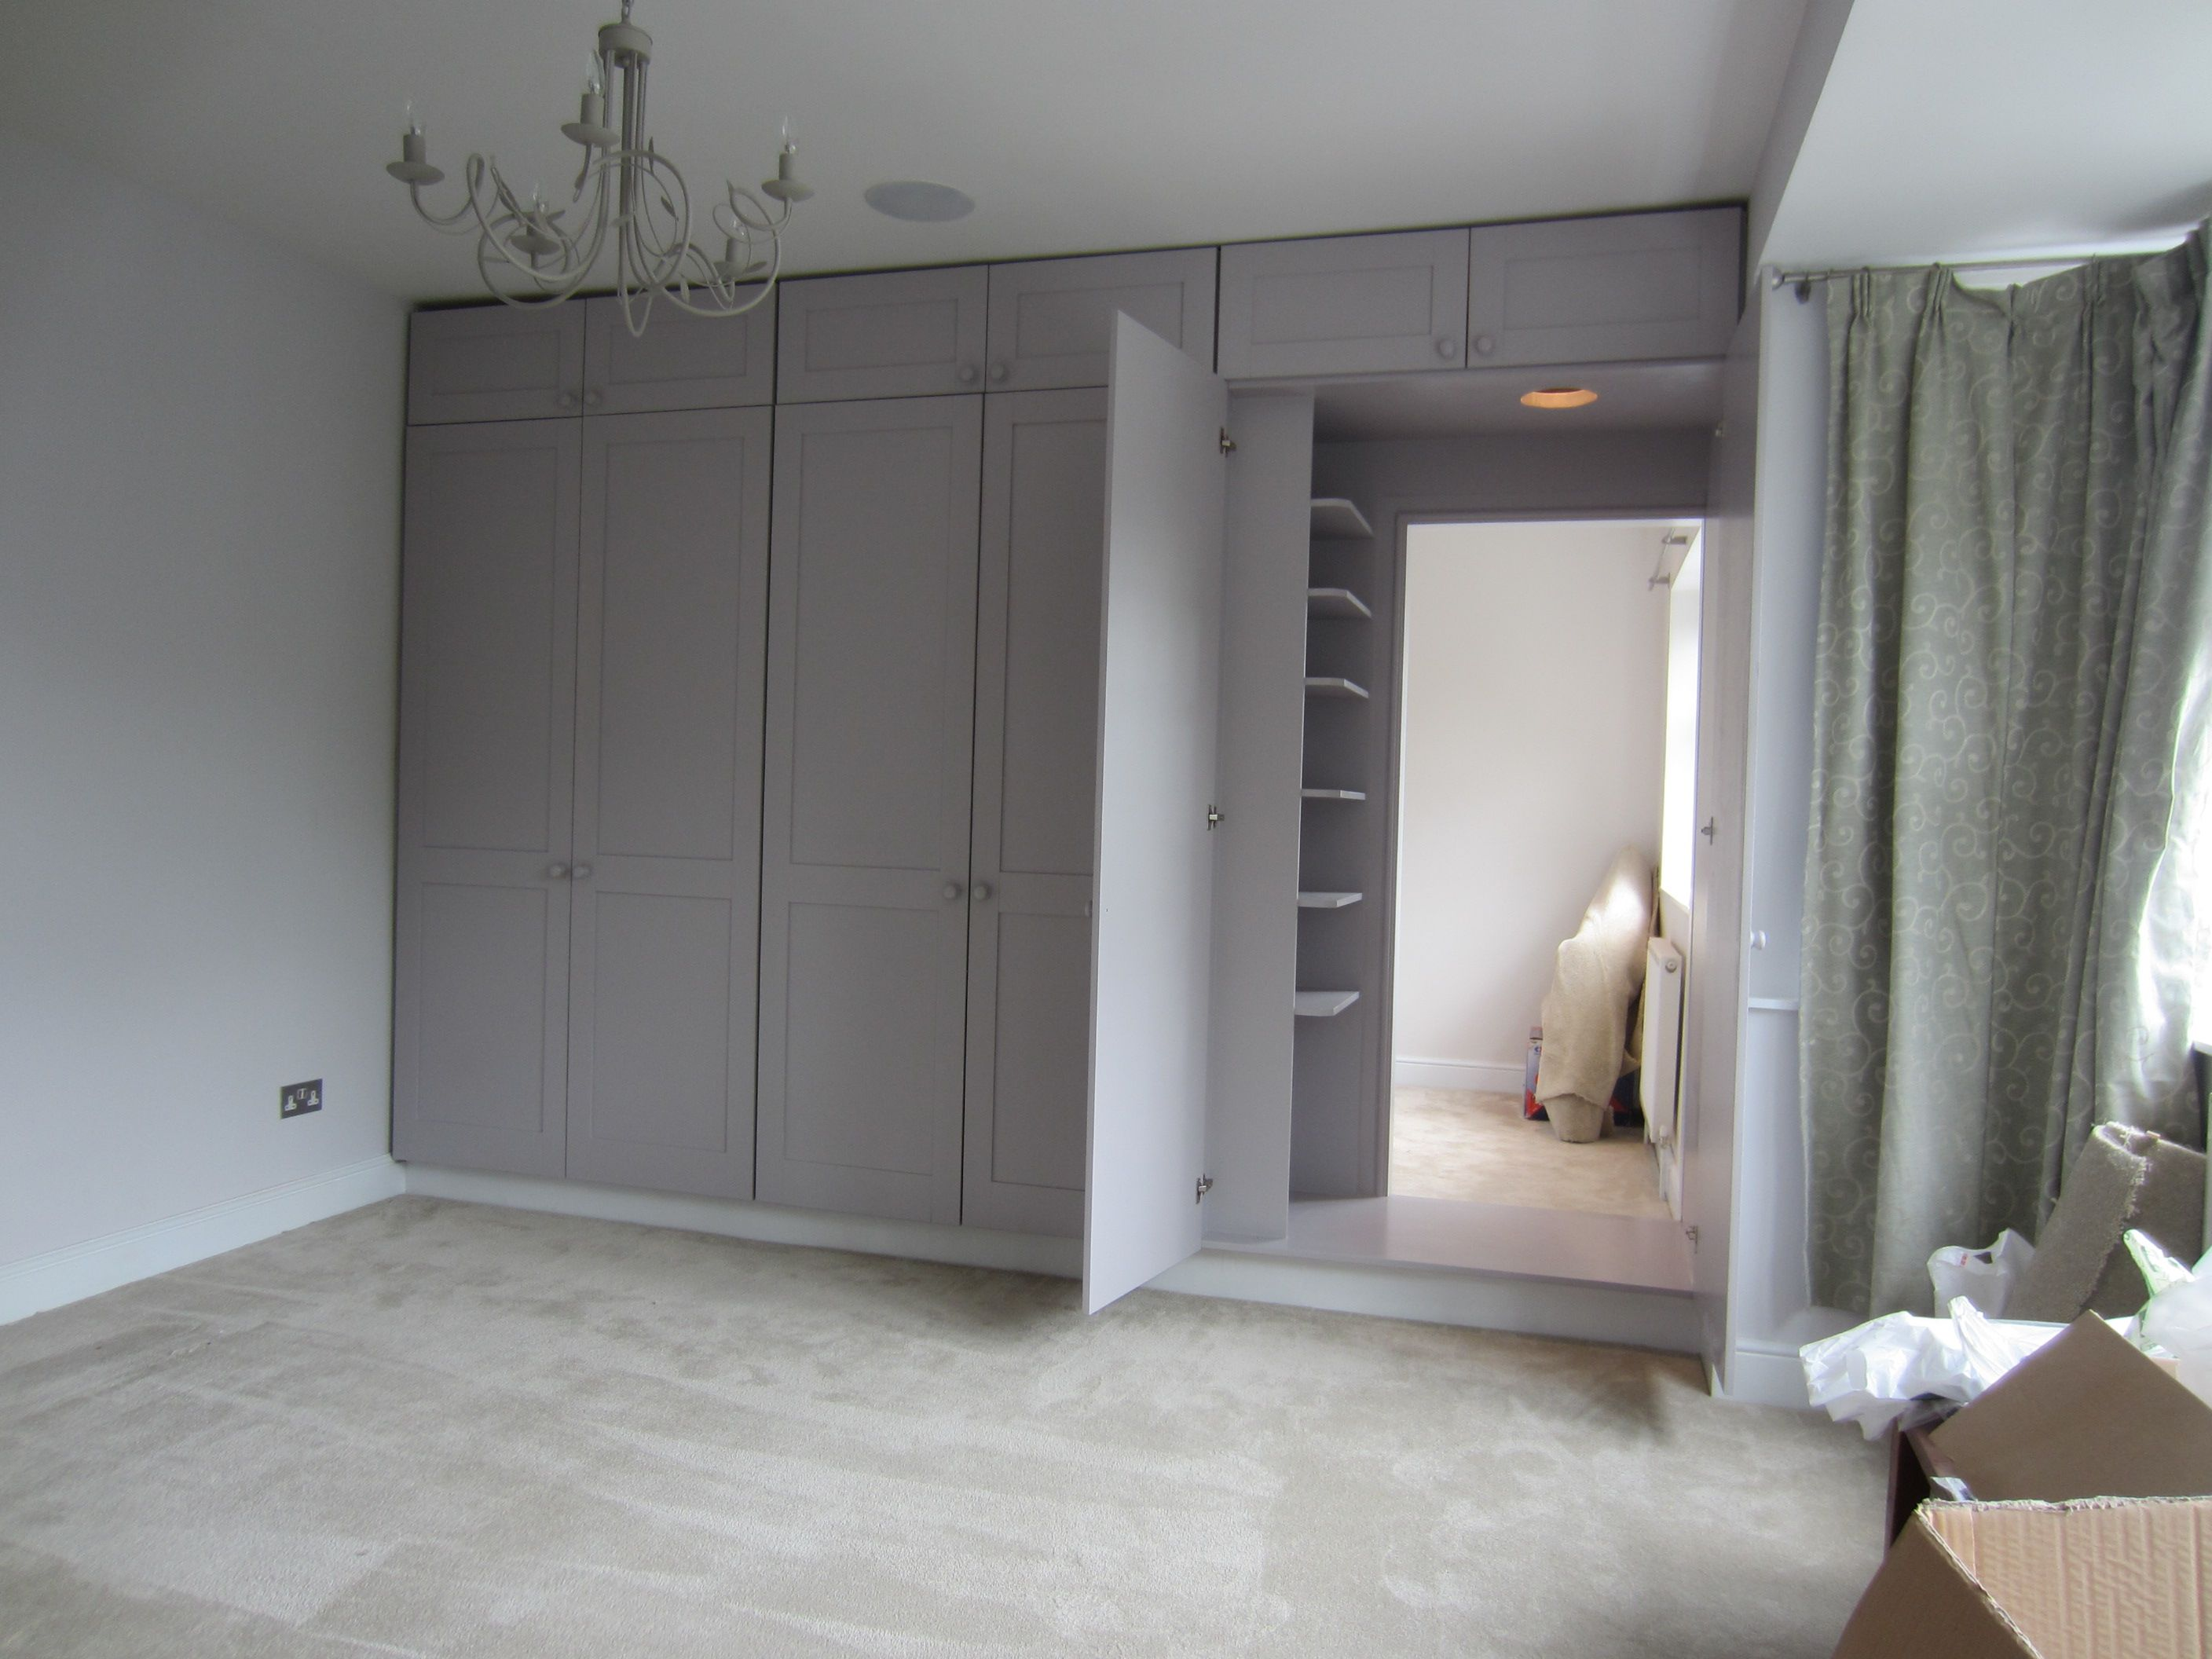 Wardrobe doors reveal hidden dressing room containing additional wardrobe units image 2 of 3 Wardrobe in master bedroom